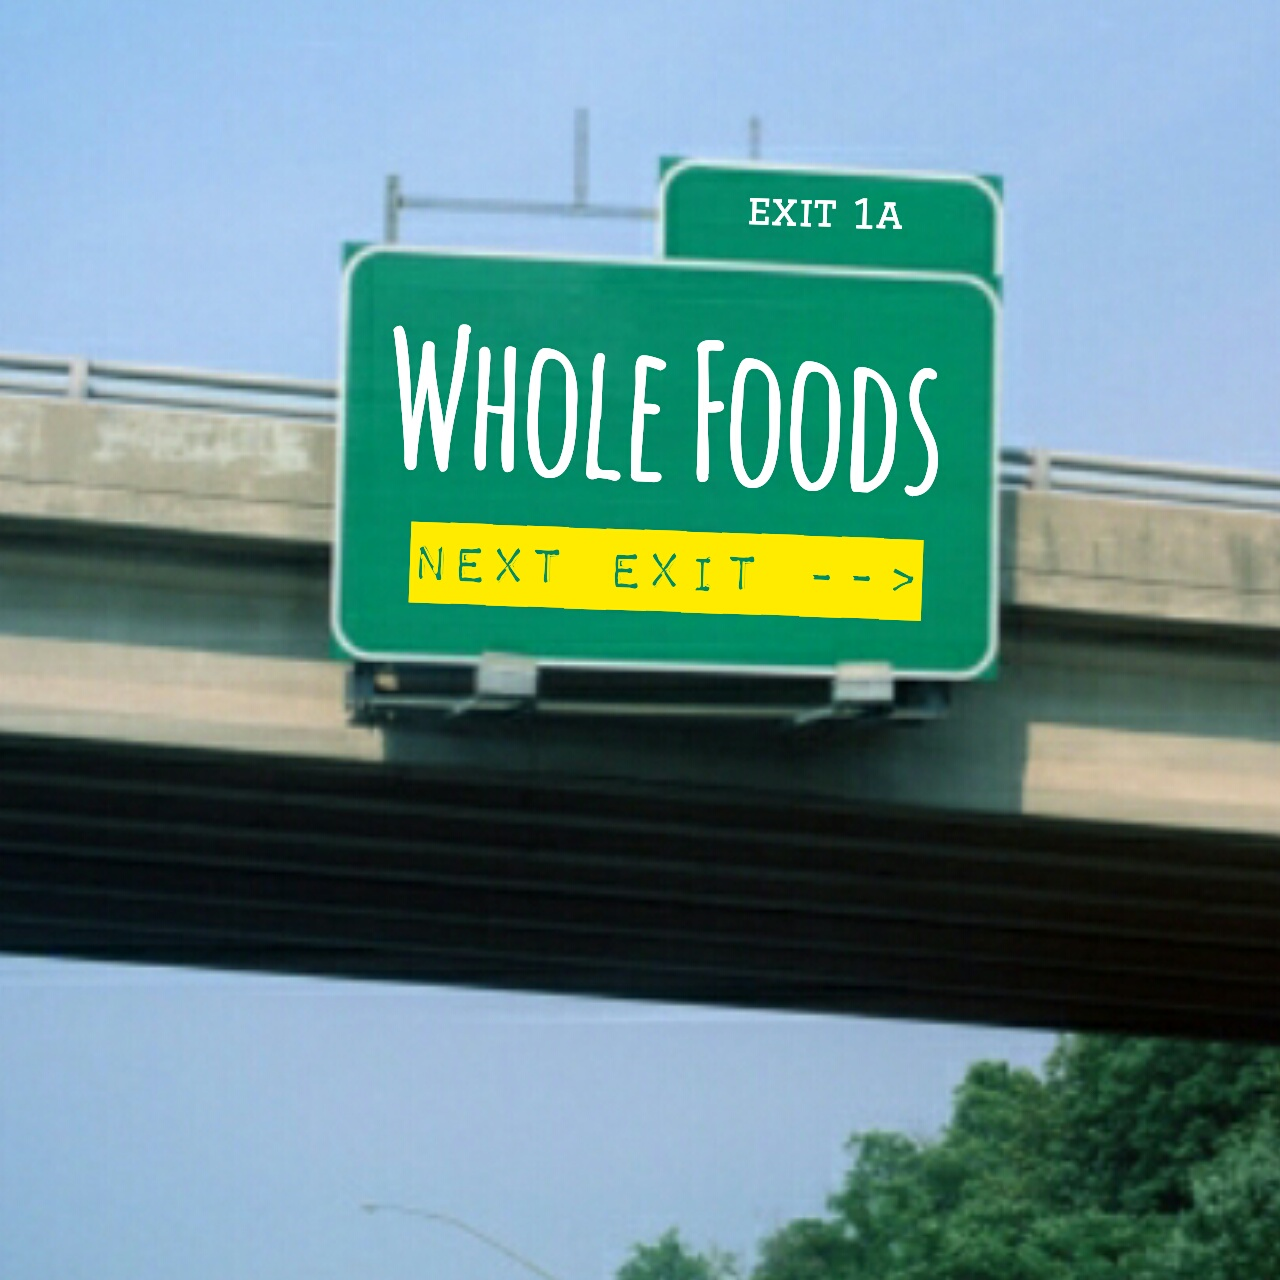 whole foods road sign.jpg